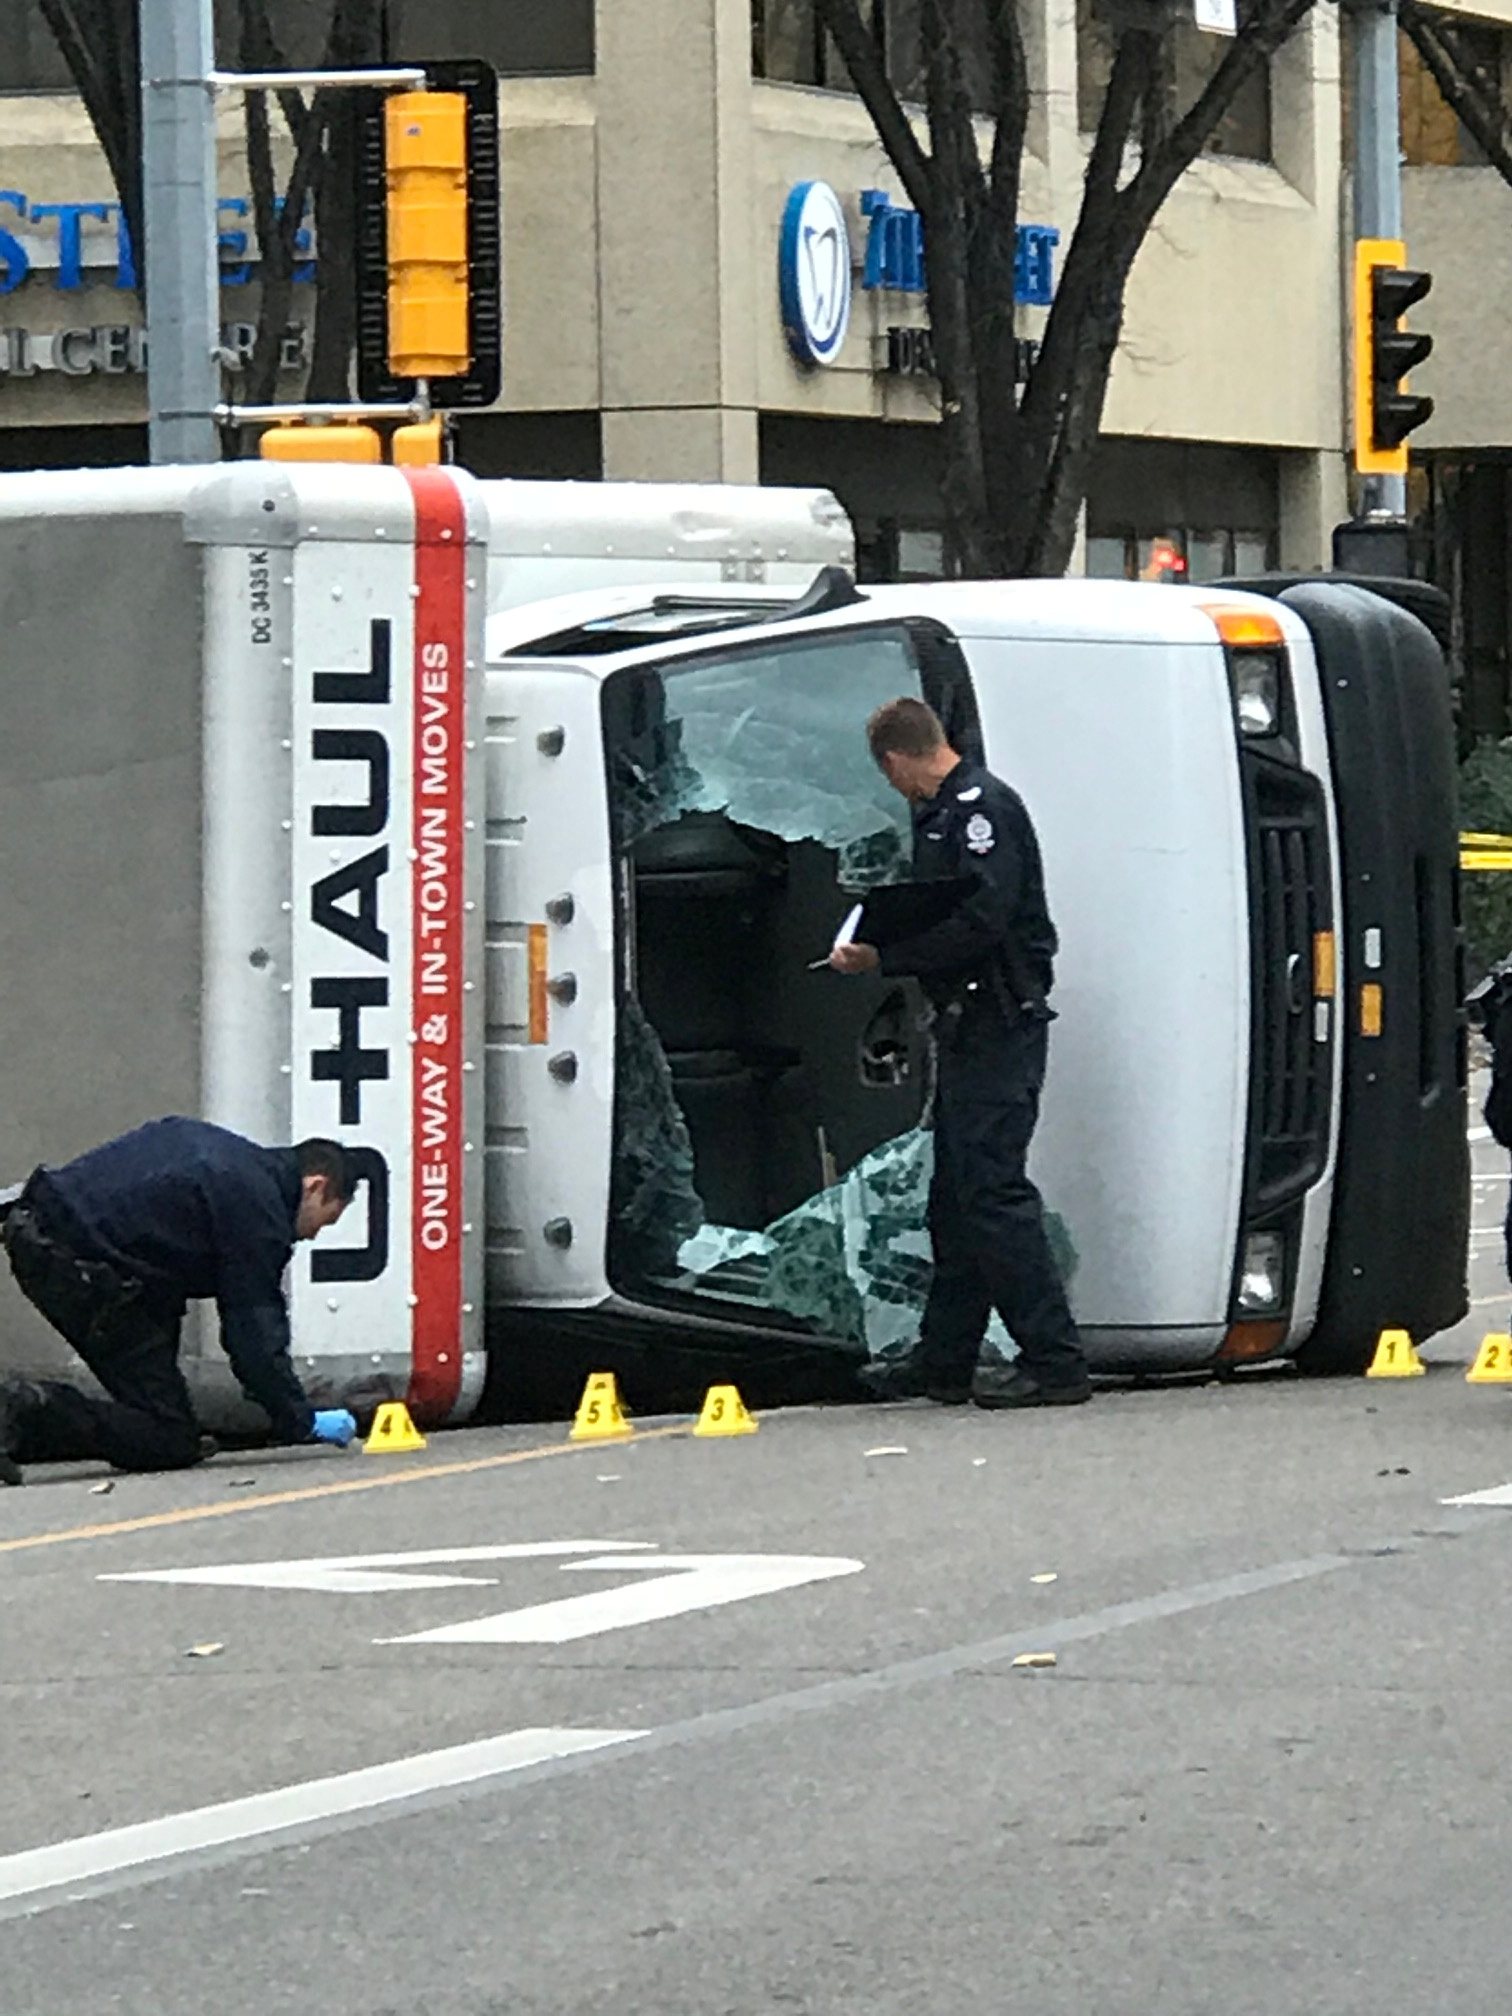 Edmonton Police investigate at the scene where a man hit pedestrians then flipped the U-Haul truck he was driving, pictured at the intersection at 107 Street and 100th Avenue in front of the Matrix Hotel in Edmonton, Alberta, Canada October 1, 2017.